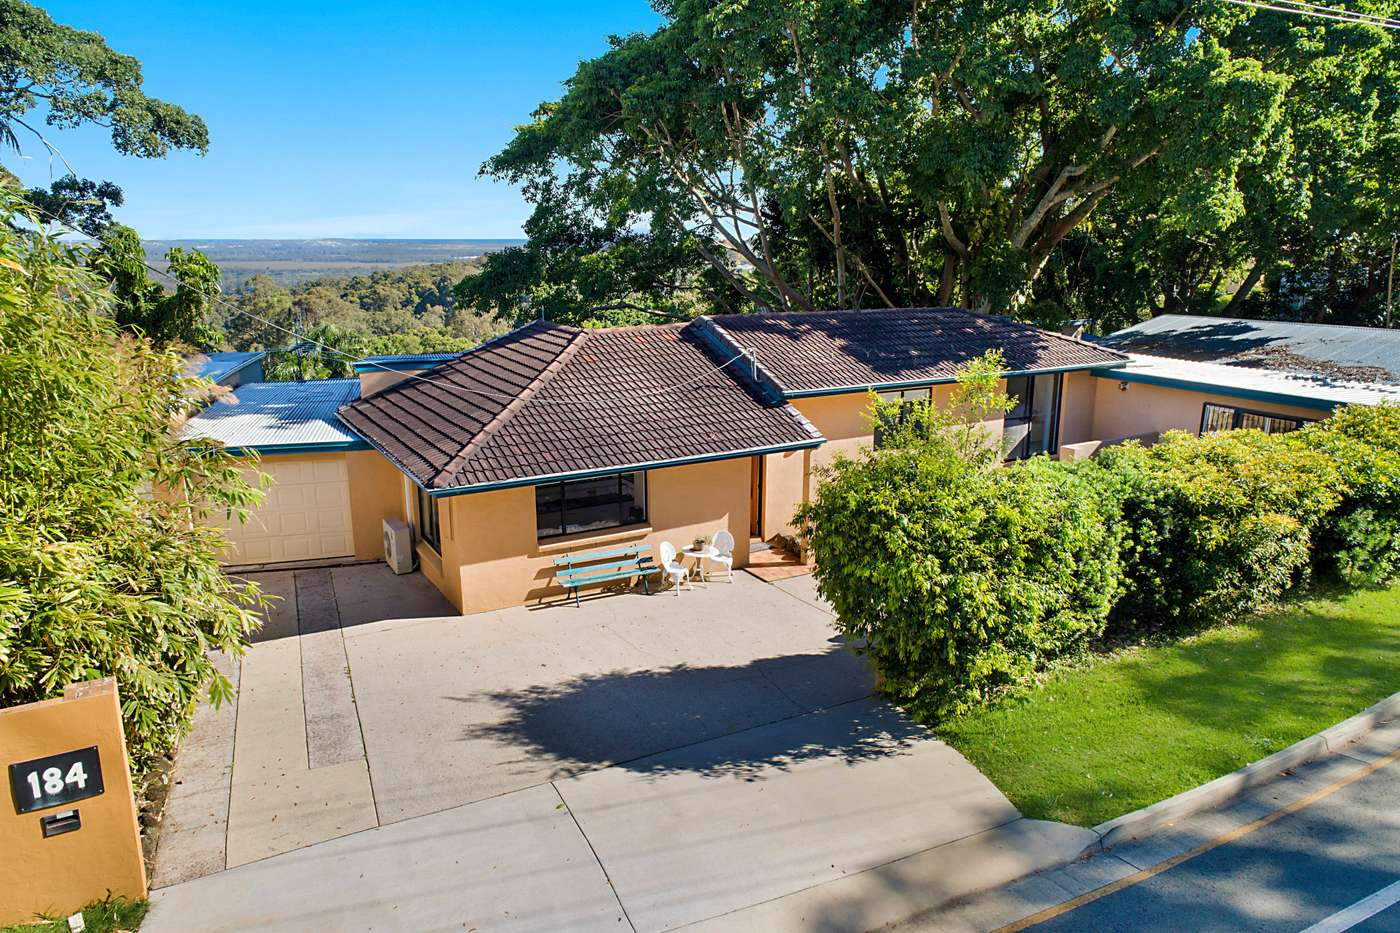 Main view of Homely house listing, 184 Mooloolaba Road, Buderim, QLD 4556